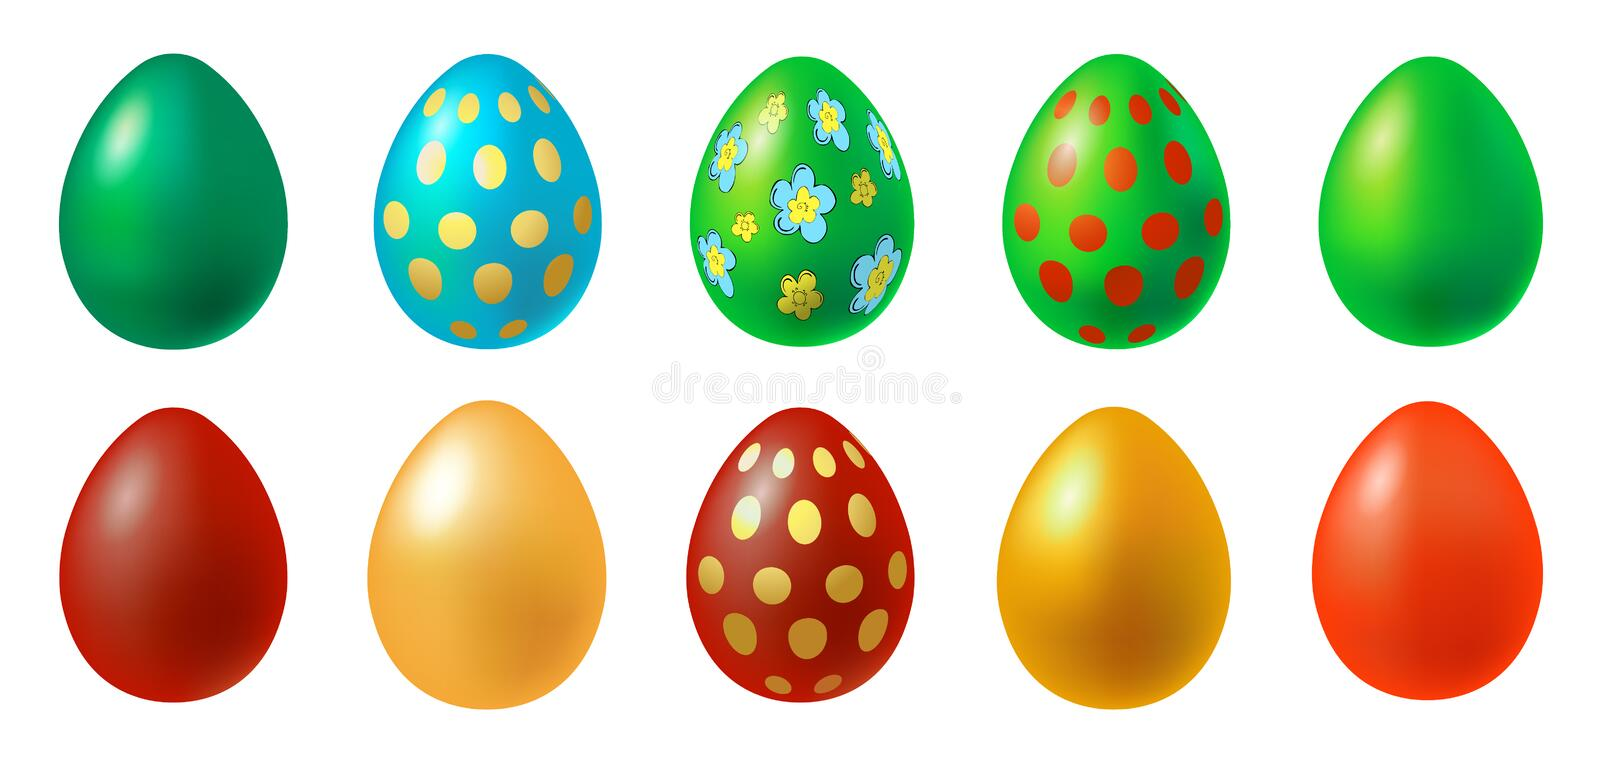 Vector illustration of Easter eggs collection on a white background. EPS 10. Vector illustration of Easter eggs collection on a white background royalty free illustration